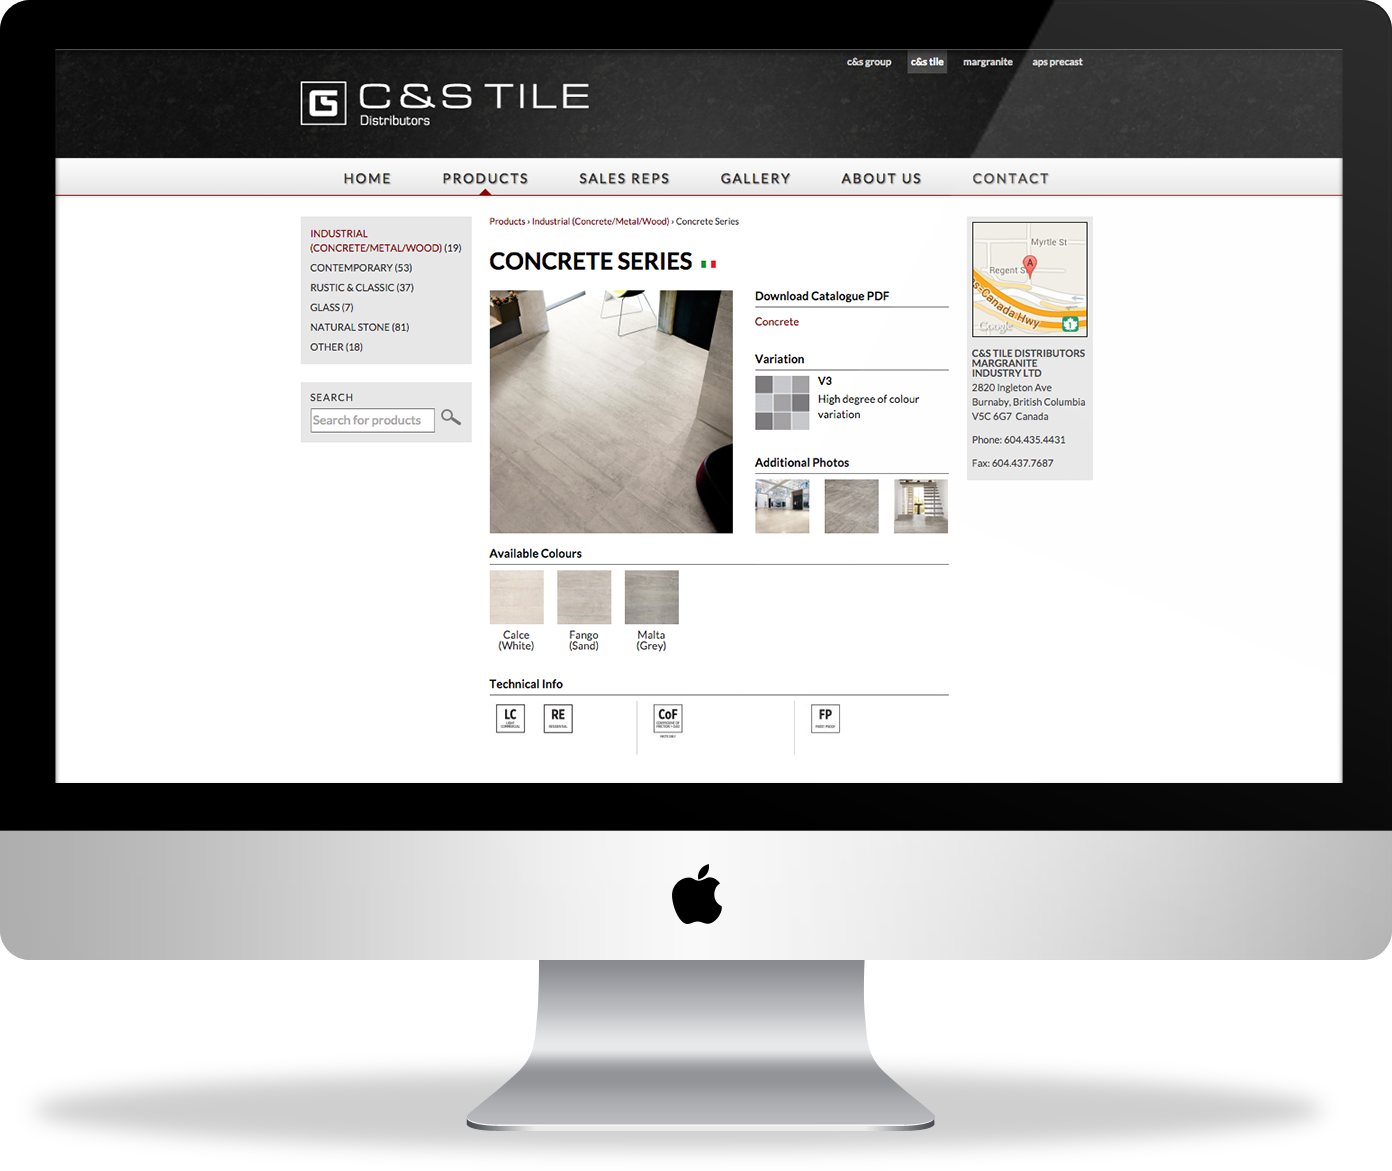 C&S Tile website - product page